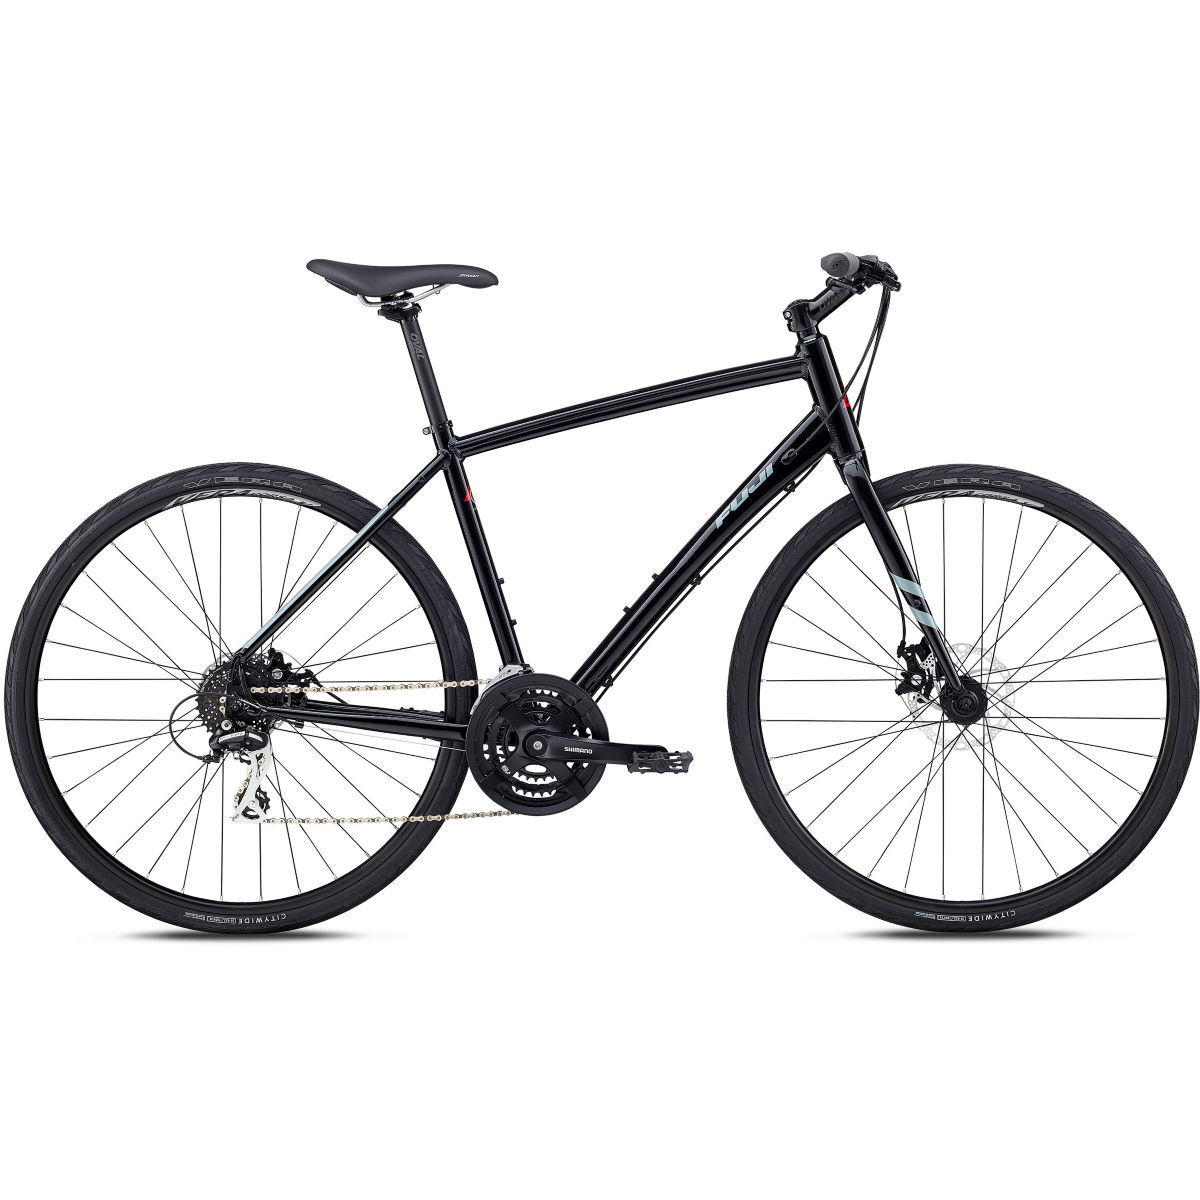 Fuji Absolute 1.9 Womans City Bike - Bicicletas de ciudad e híbridas